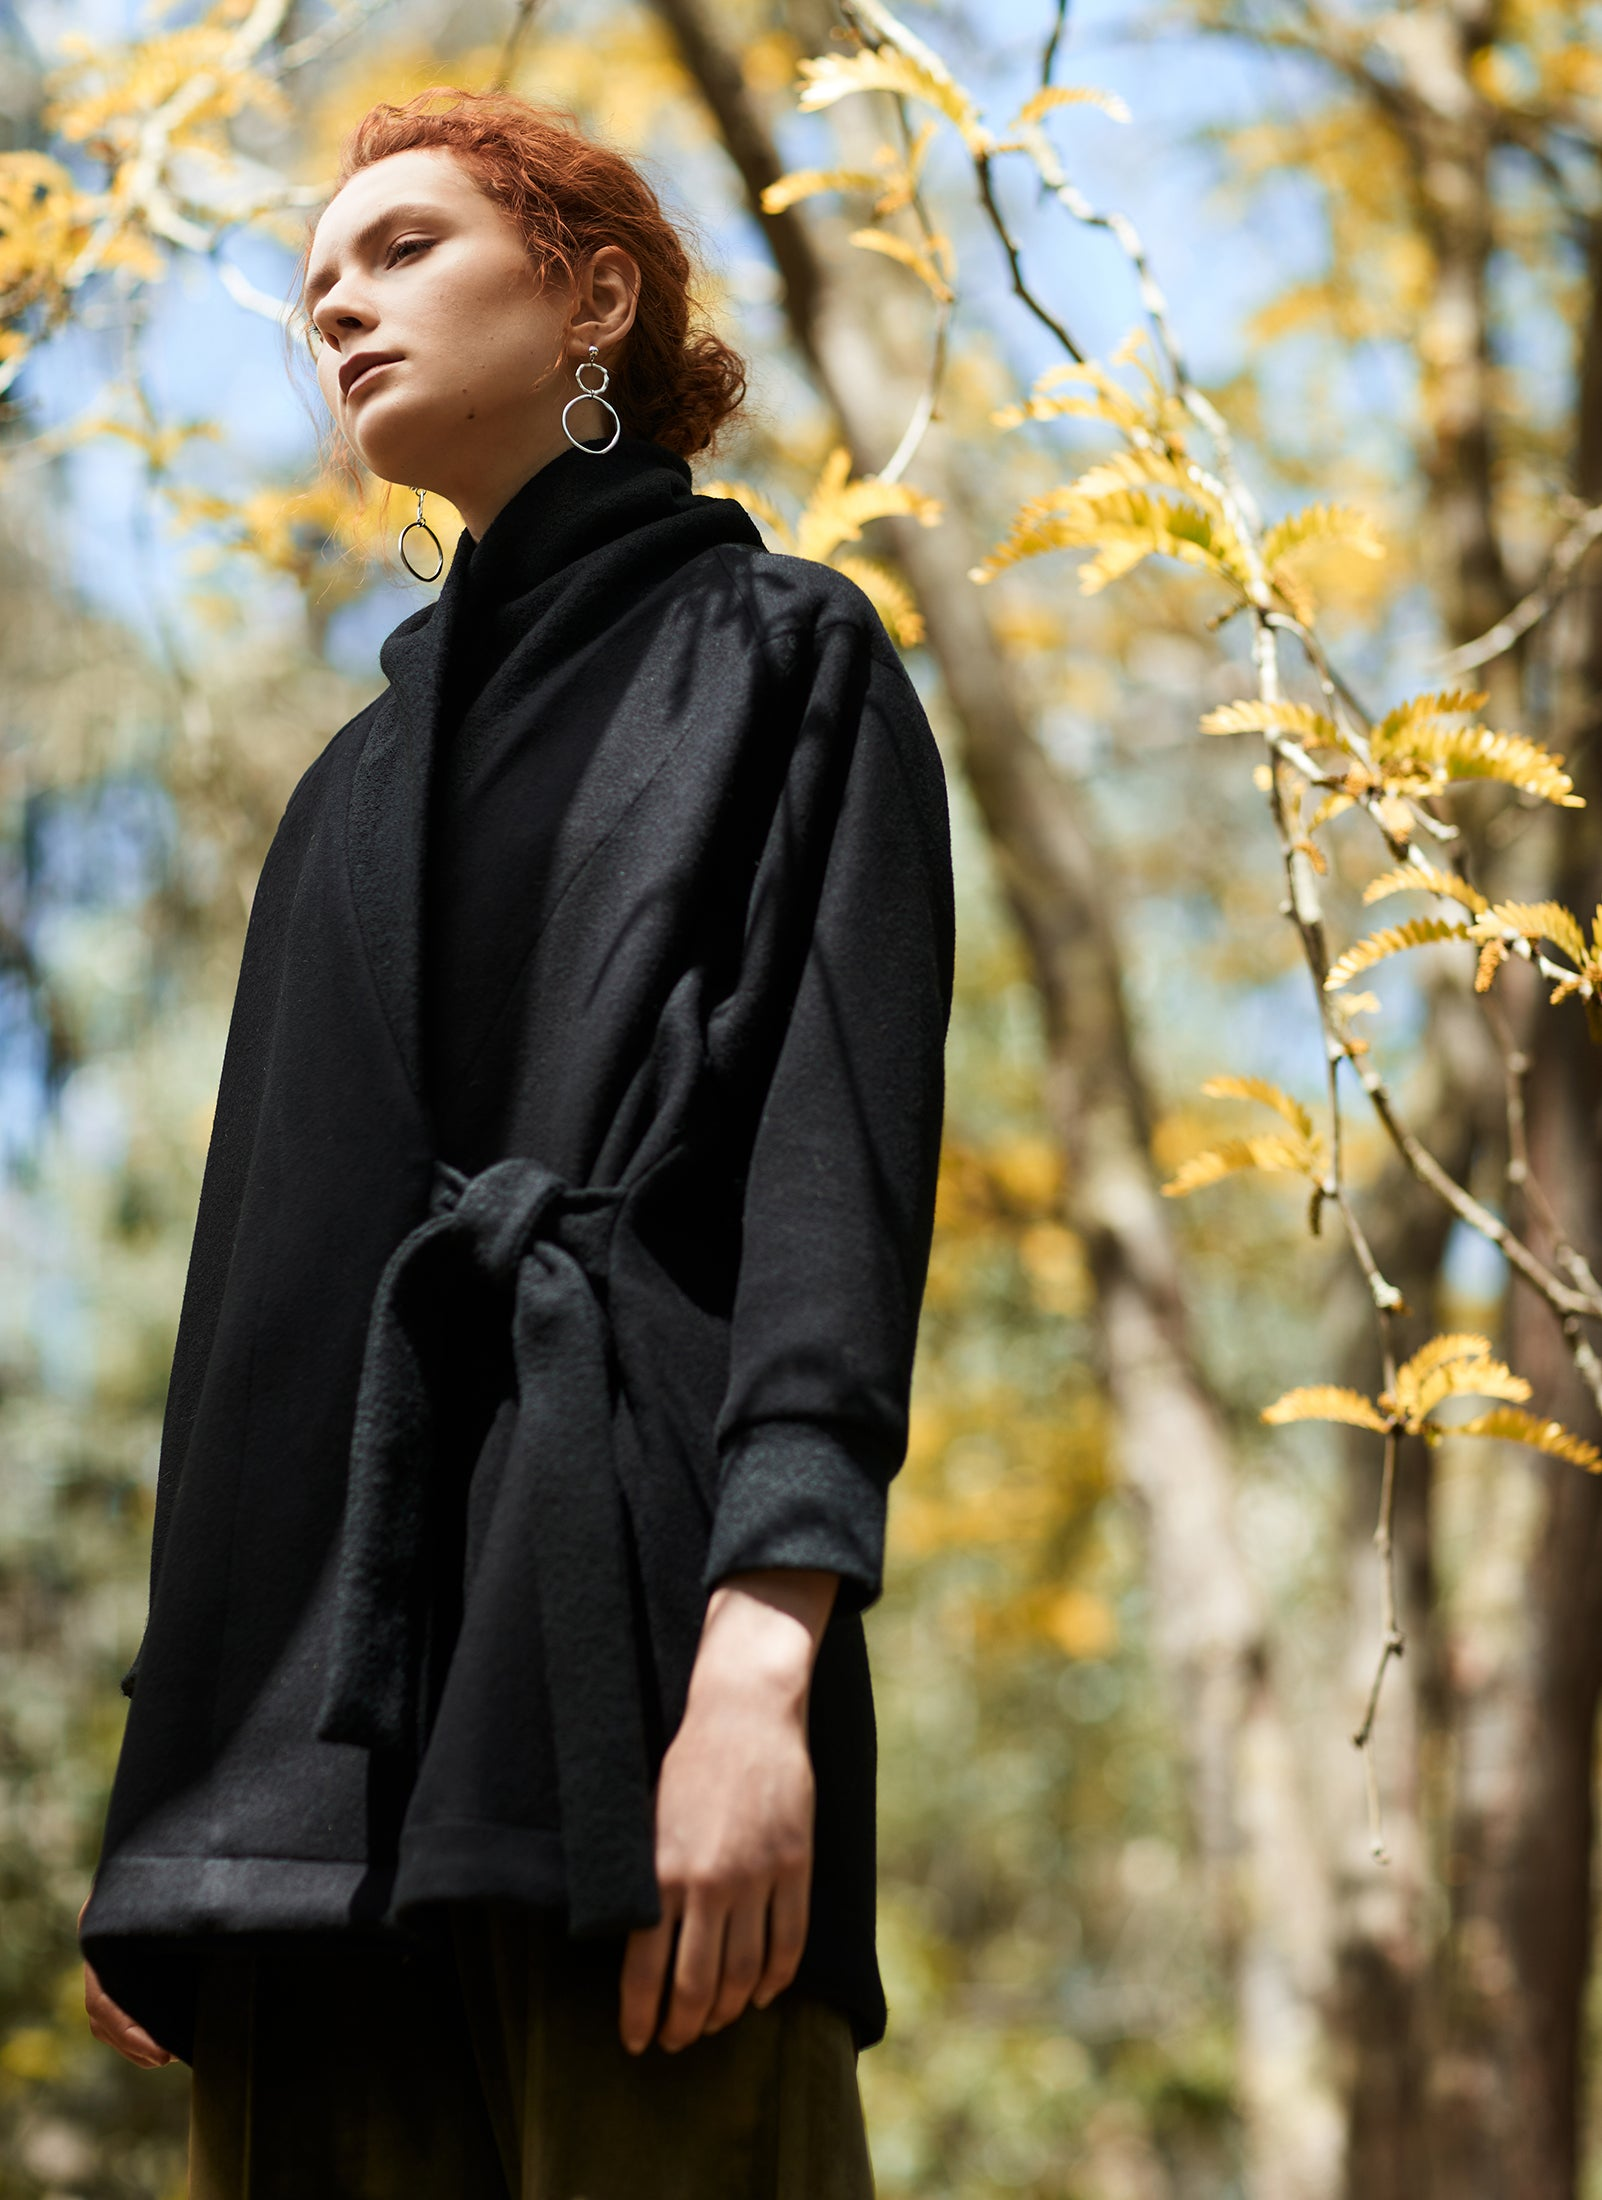 keegan AW19 Woodland Campaign Ethical Fashion Made in Melbourne Australia Black Wool Coat Bushland